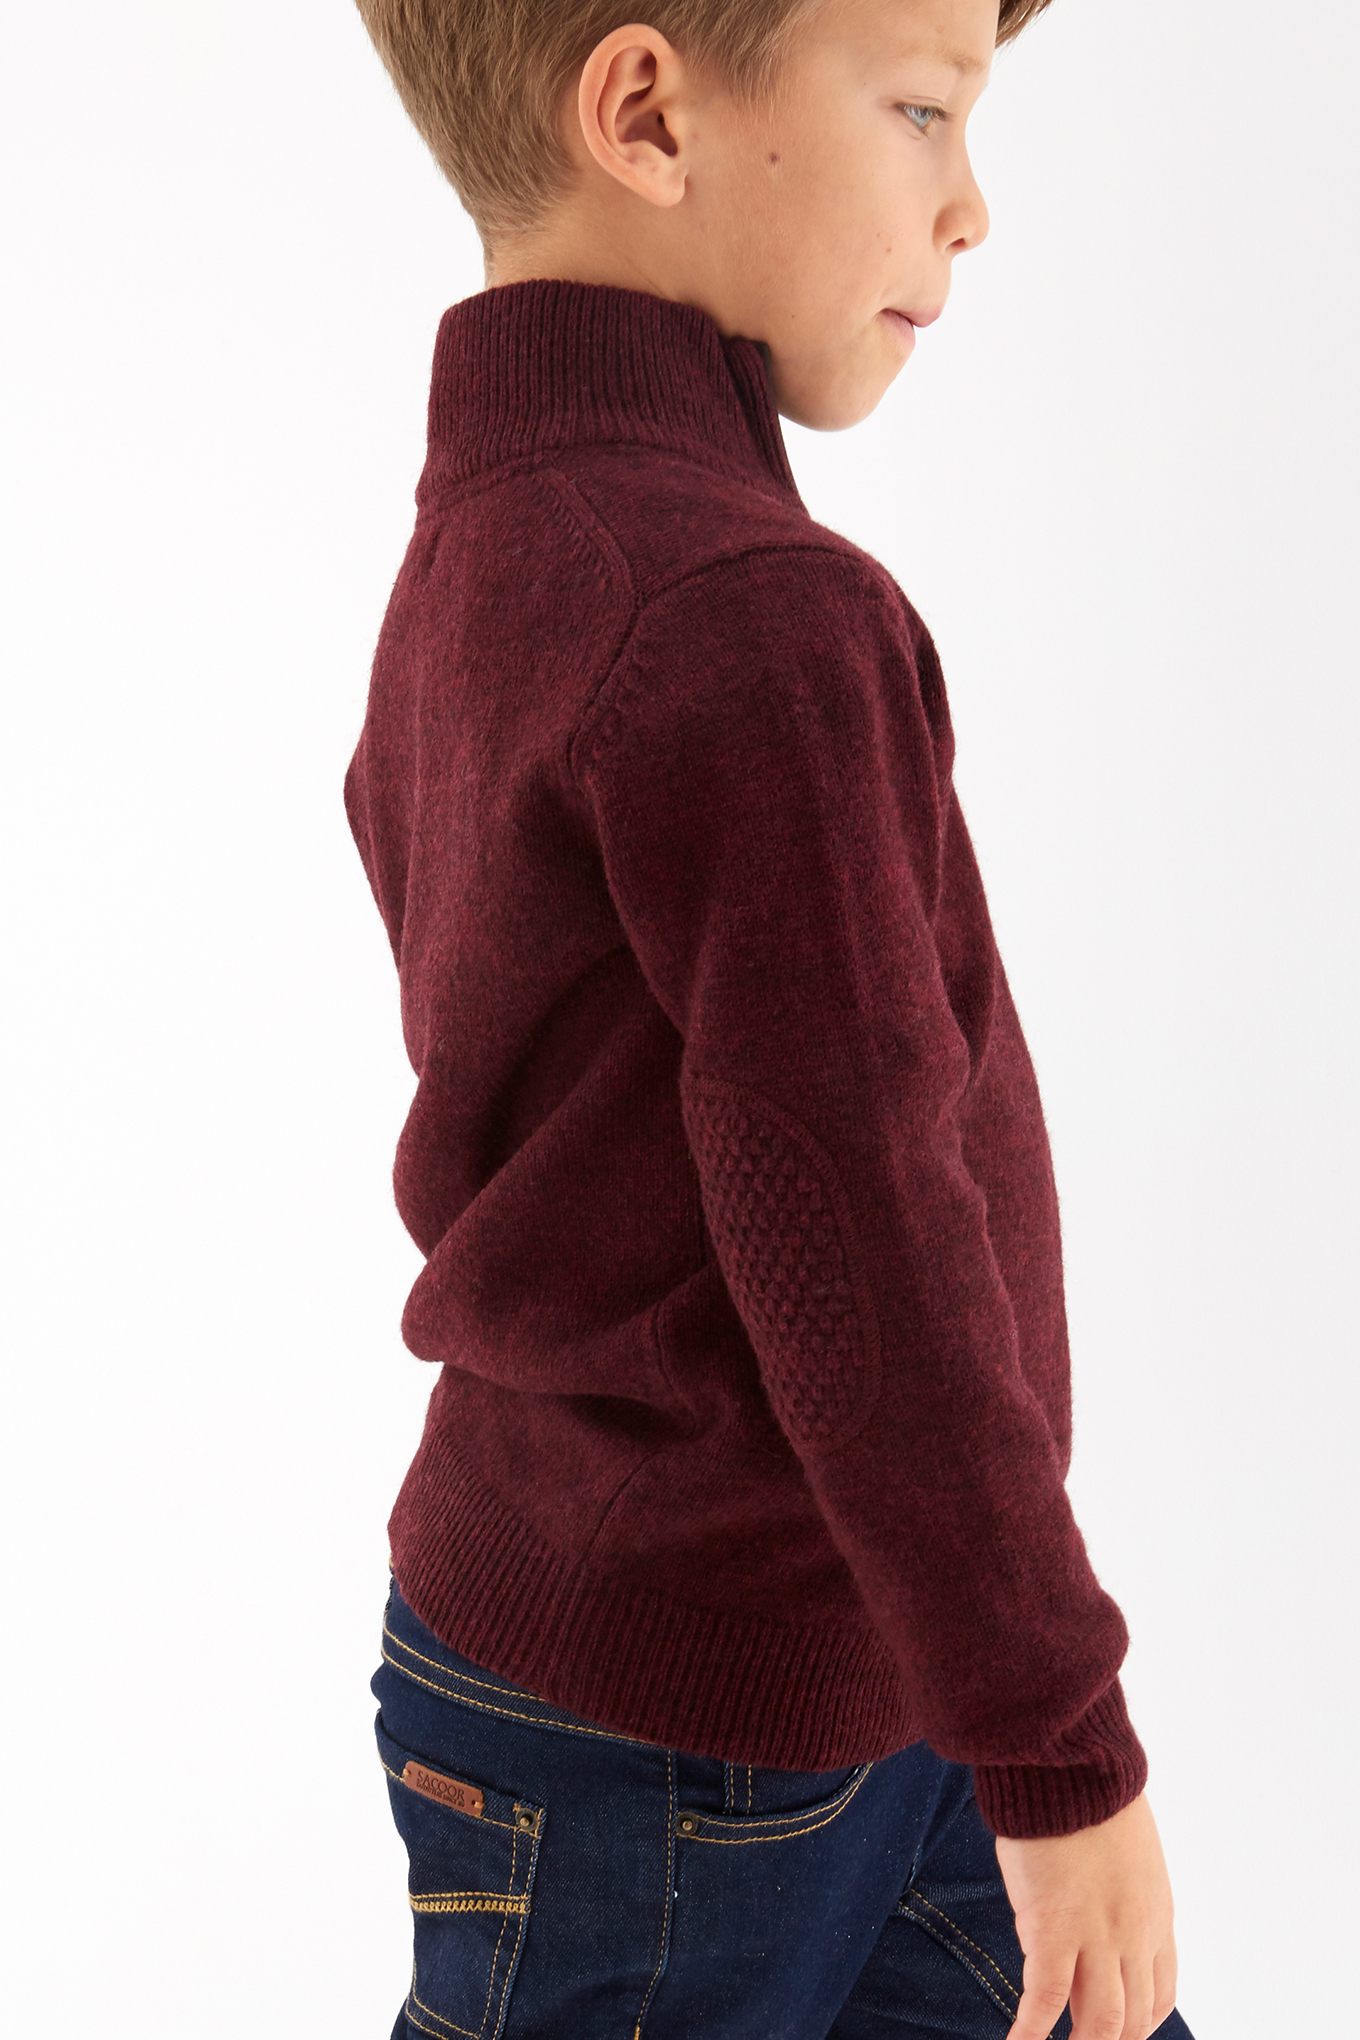 Sweater Bordeaux Sport Boy